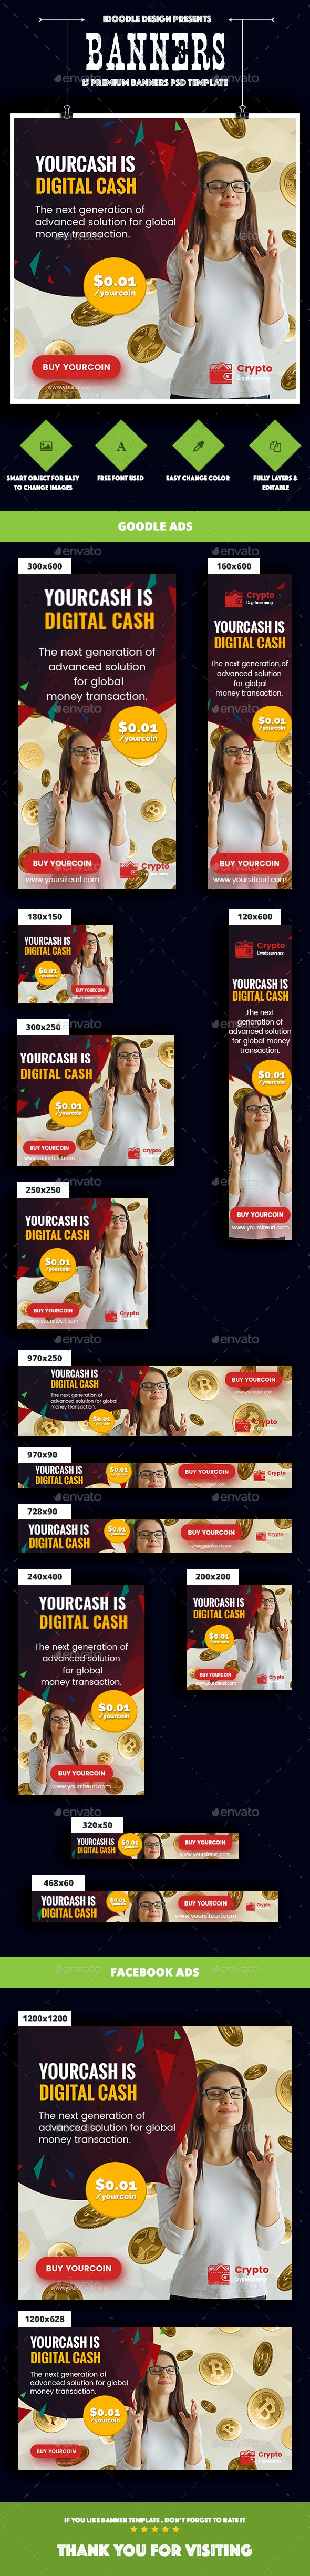 Cryptocurrency Banners Ads - Banners & Ads Web Elements